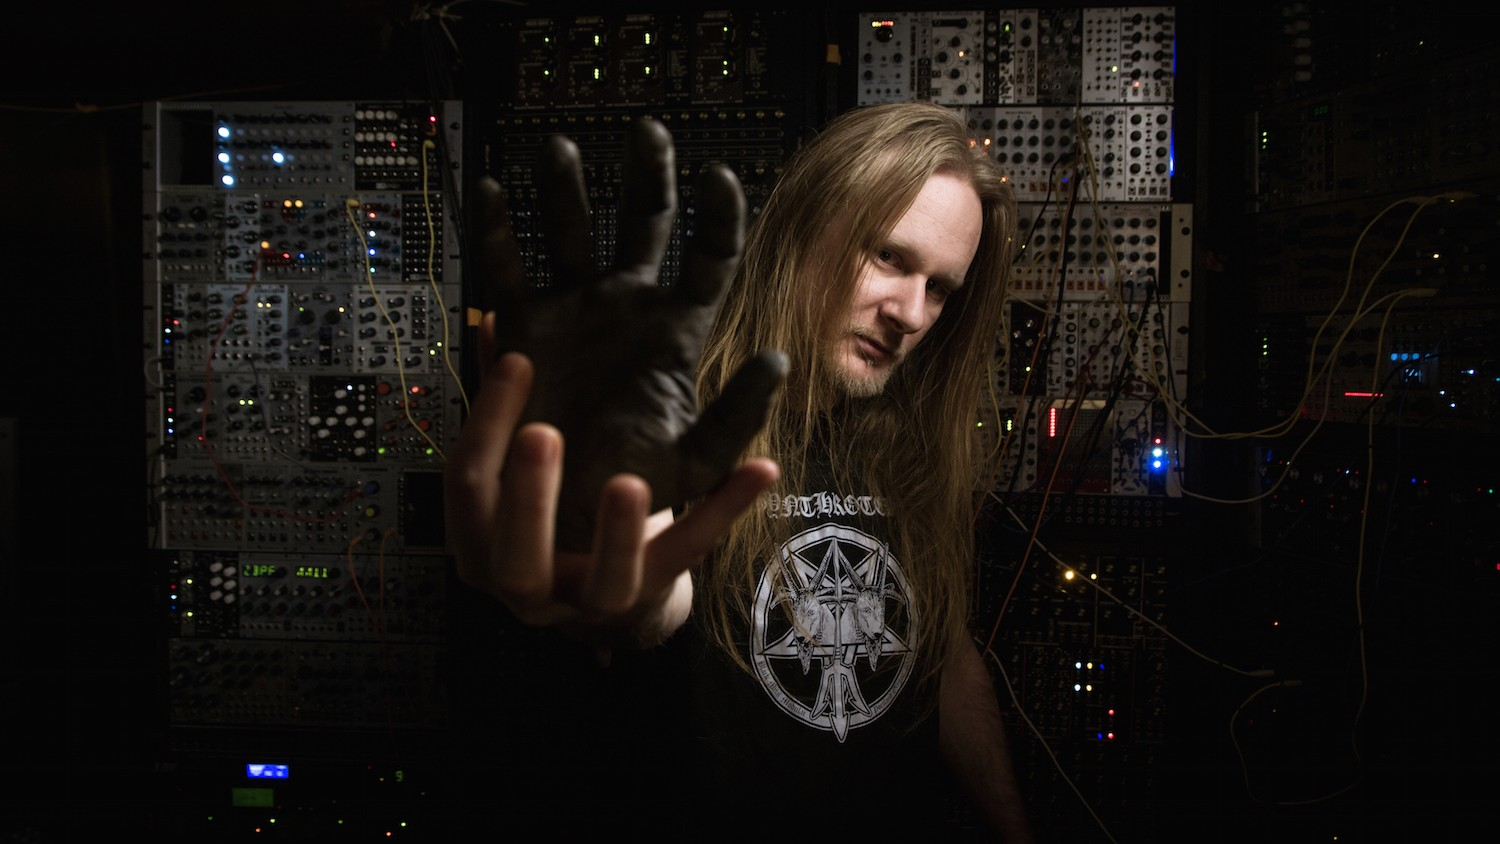 How Venetian Snares' Homemade Modular Synth Inspired His New Album